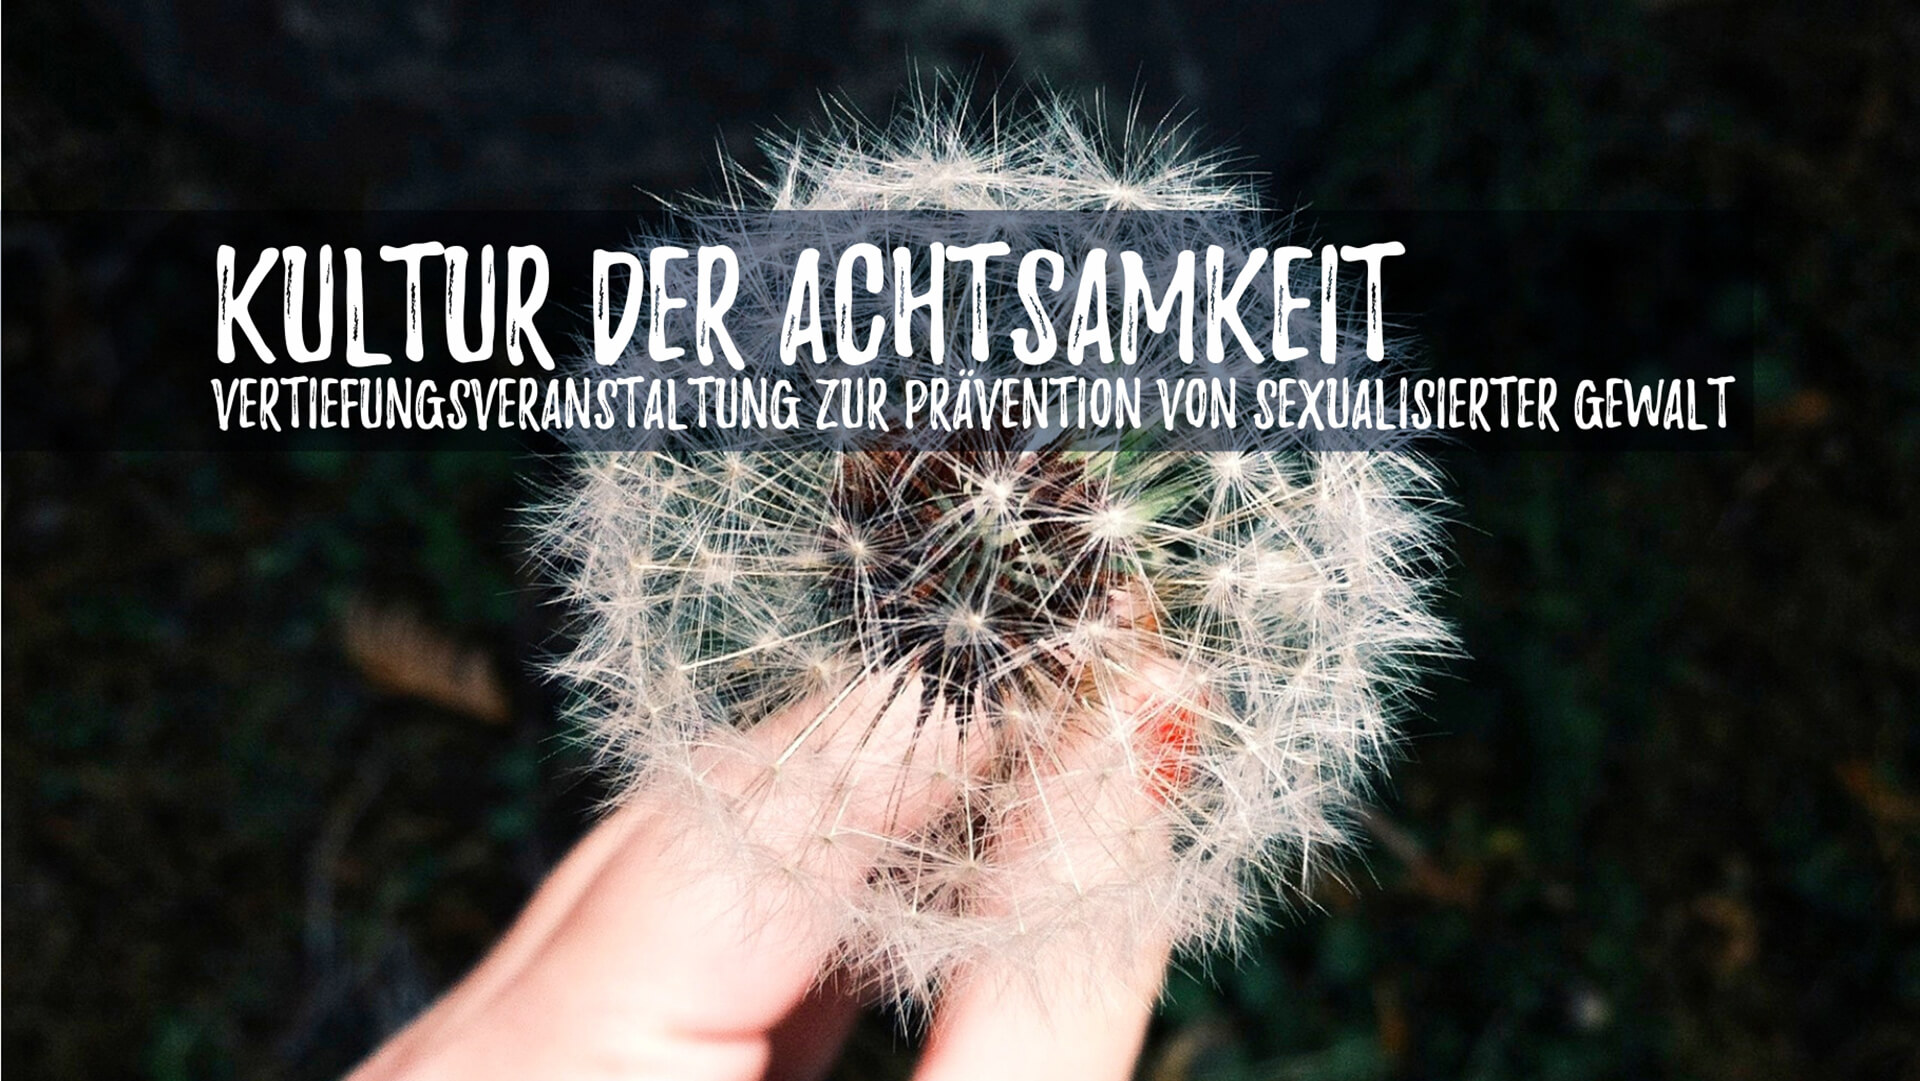 04 Achtsamkeit (c) Coley Christine/Unsplash